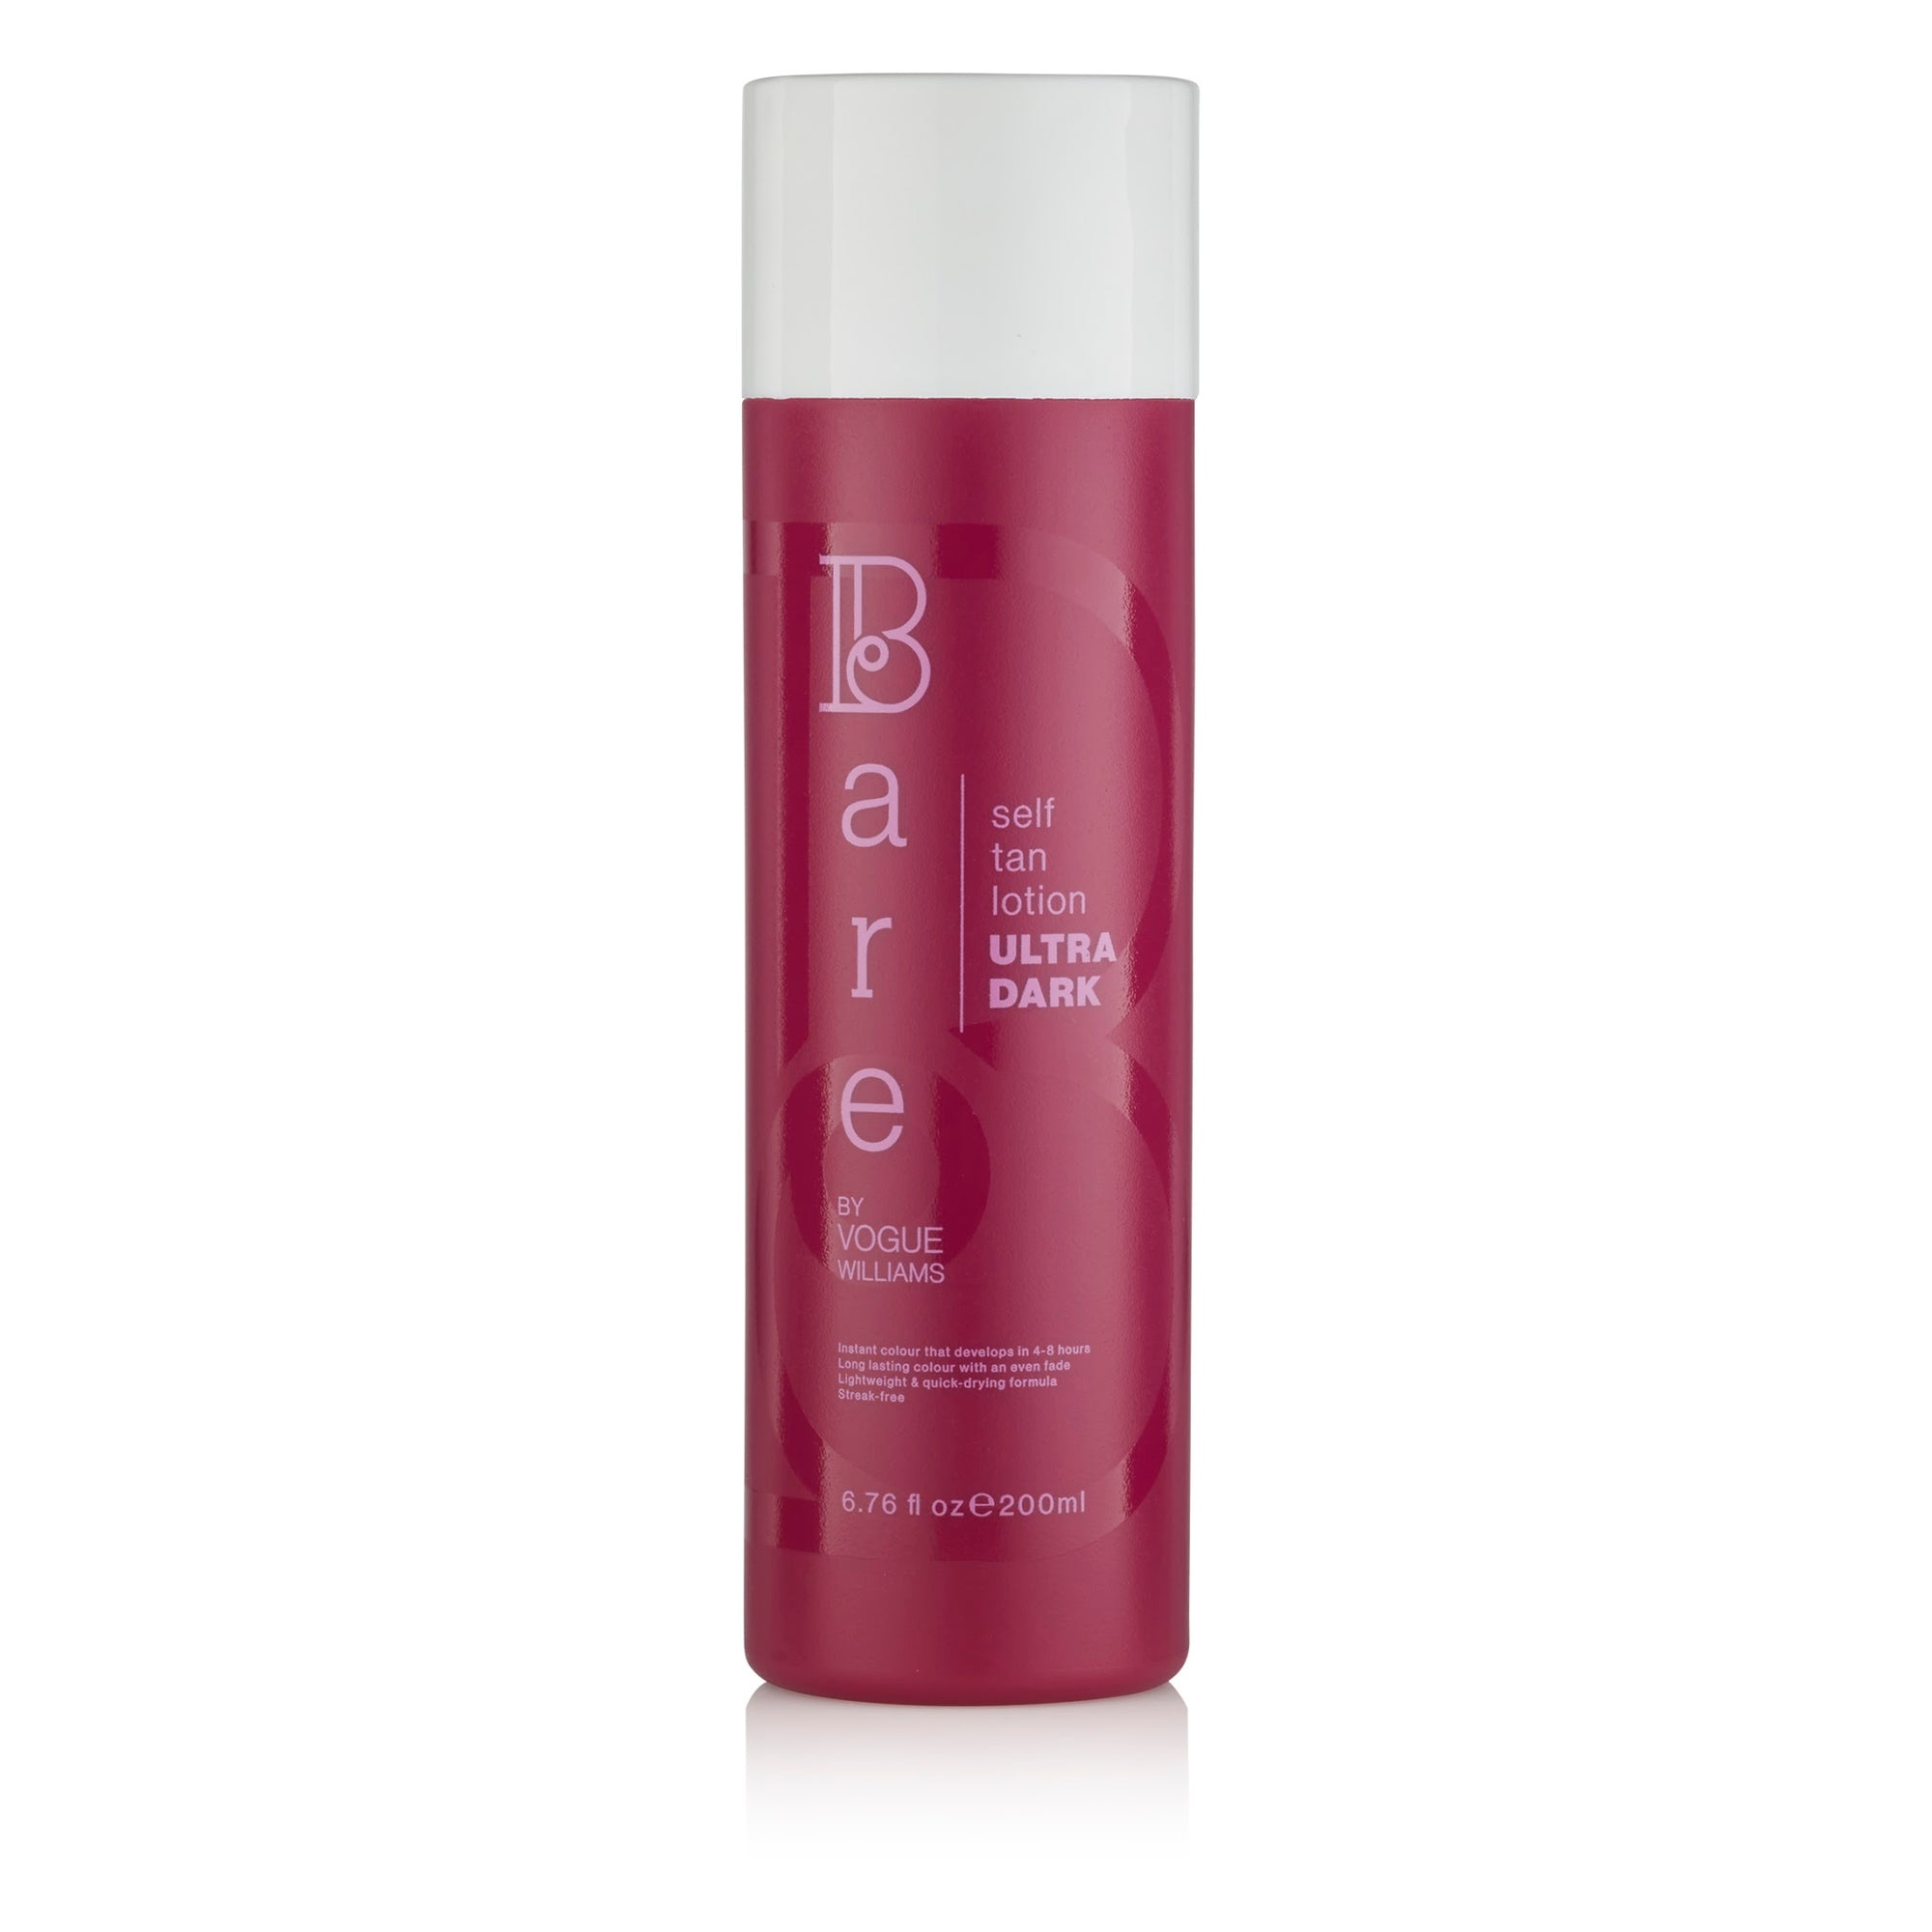 Bare by Vogue - Self Tan Lotion - Ultra Dark - 200ml